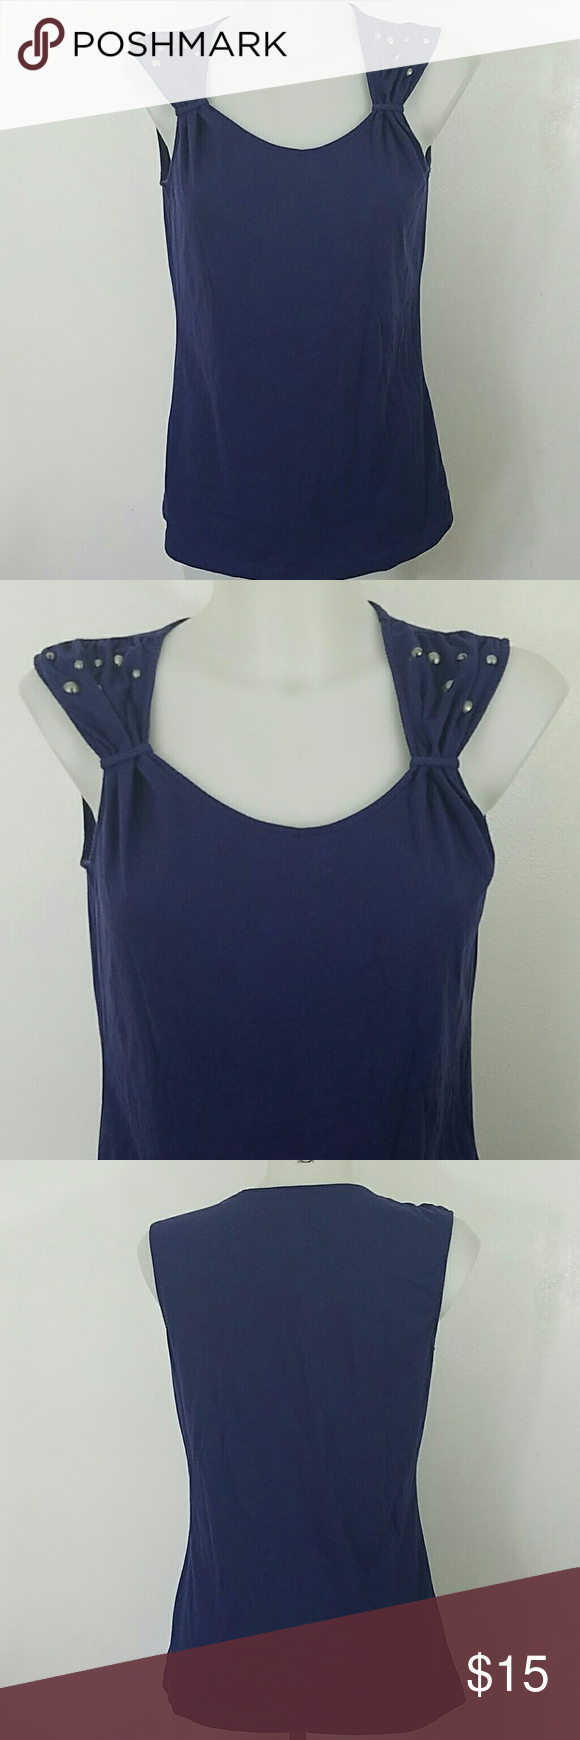 """Ariat Tank Top Ariat Tank Top. In great condition. Size medium.  Bust 36"""" Length 26"""" Ariat Tops Tank Tops"""